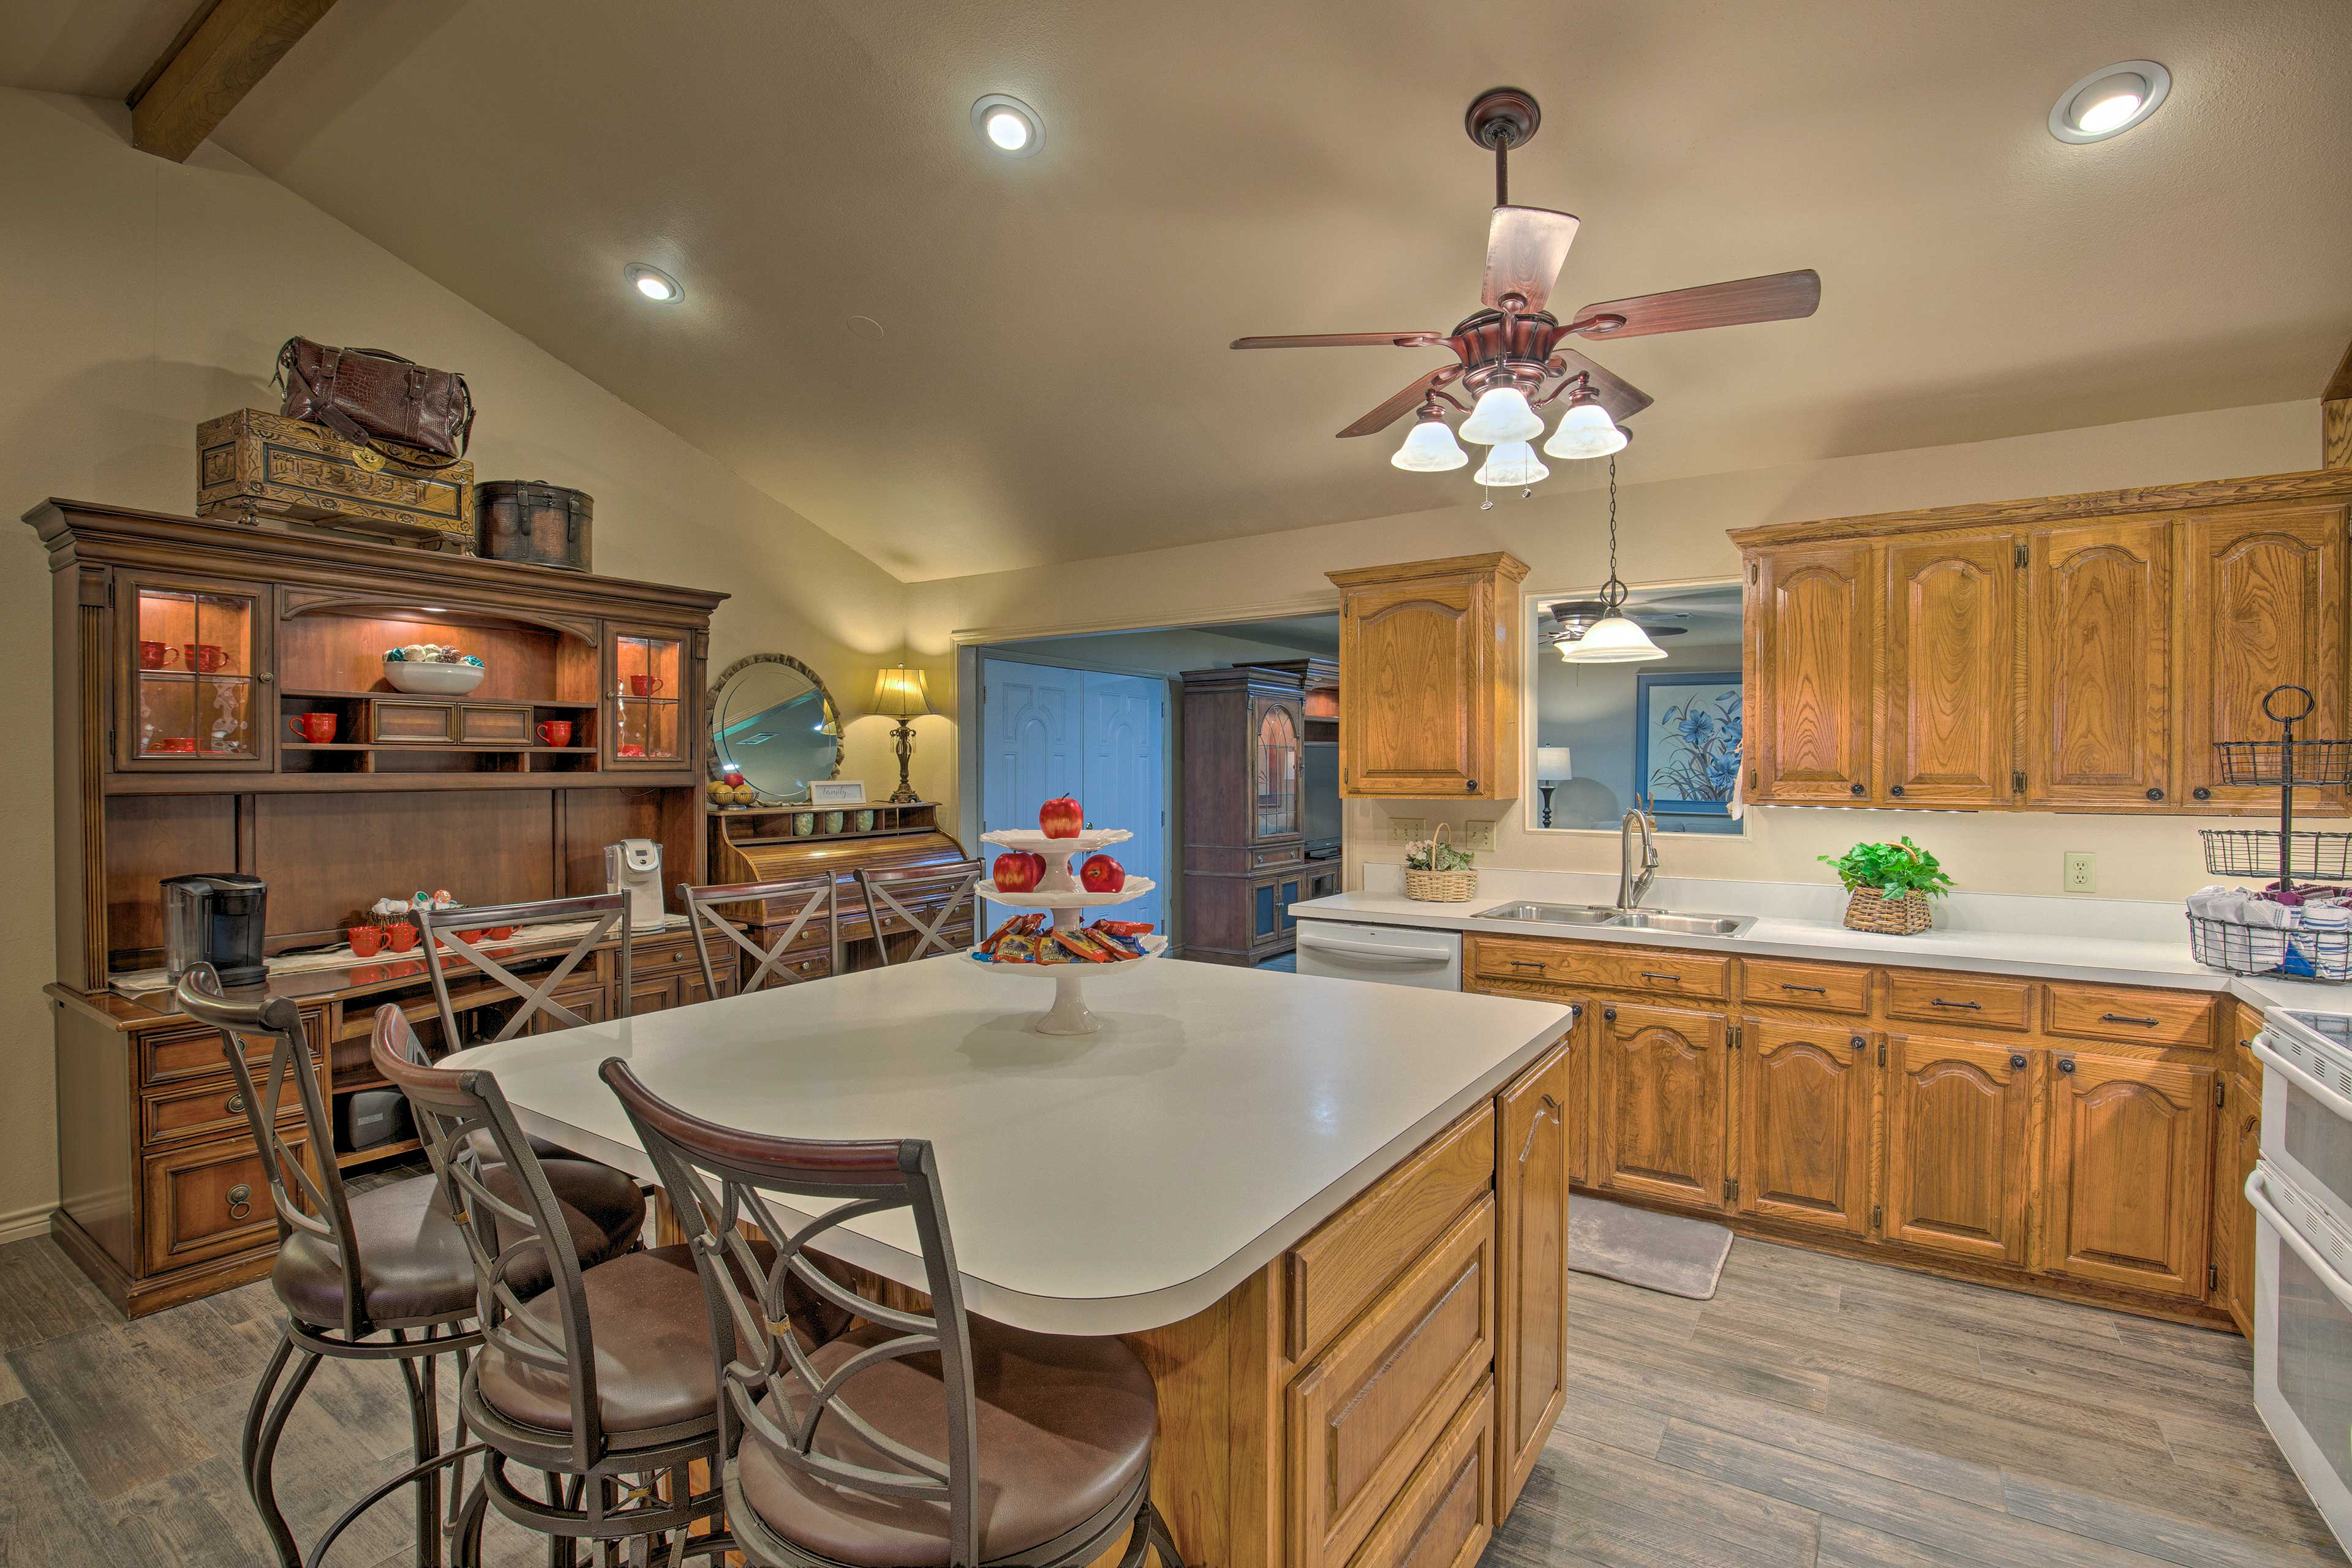 The kitchen is fully equipped with your basic cooking needs.